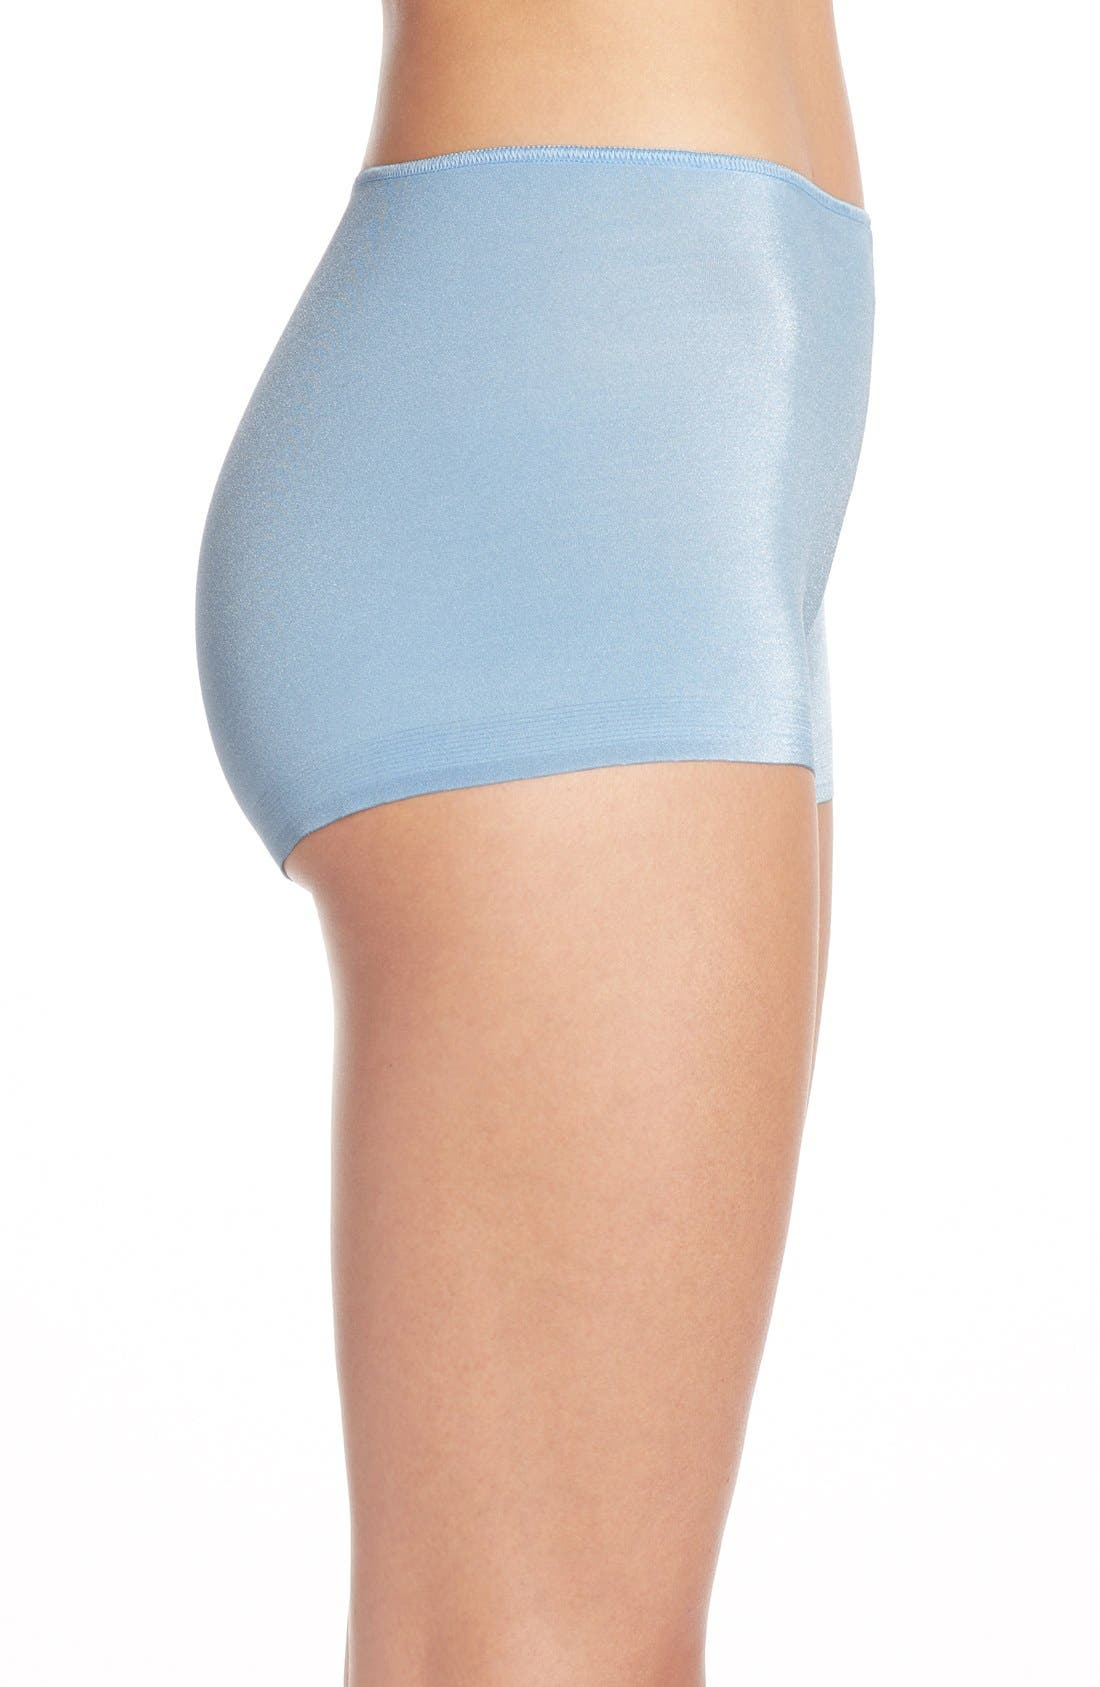 Alternate Image 3  - TC Wonderful Edge® Boyshorts (3 for $39)